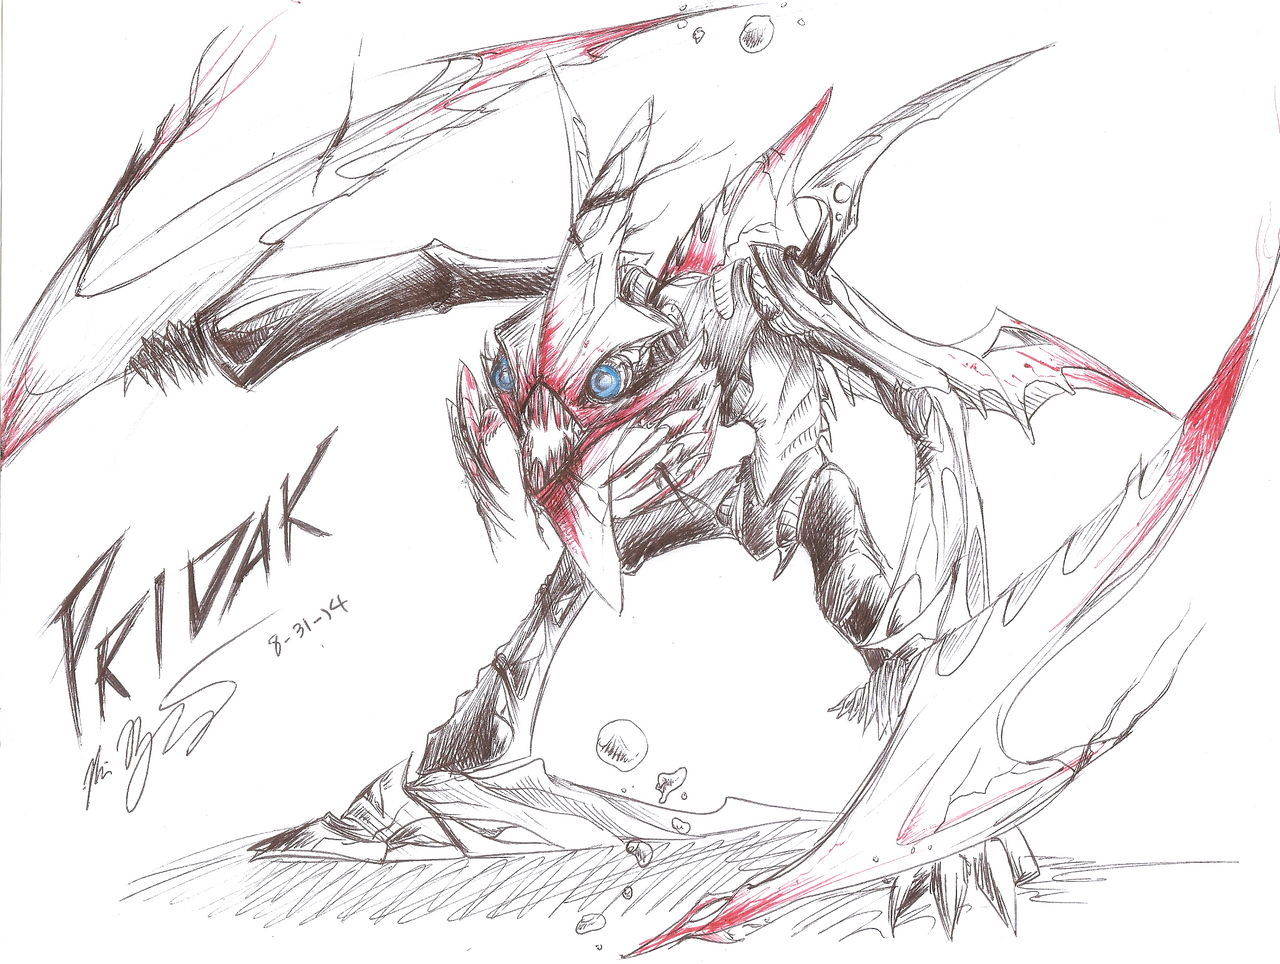 [Fan-Arts] Images du net - Page 19 Pridak__lord_of_the_pit_by_ryoukazehara-d7xfm5s